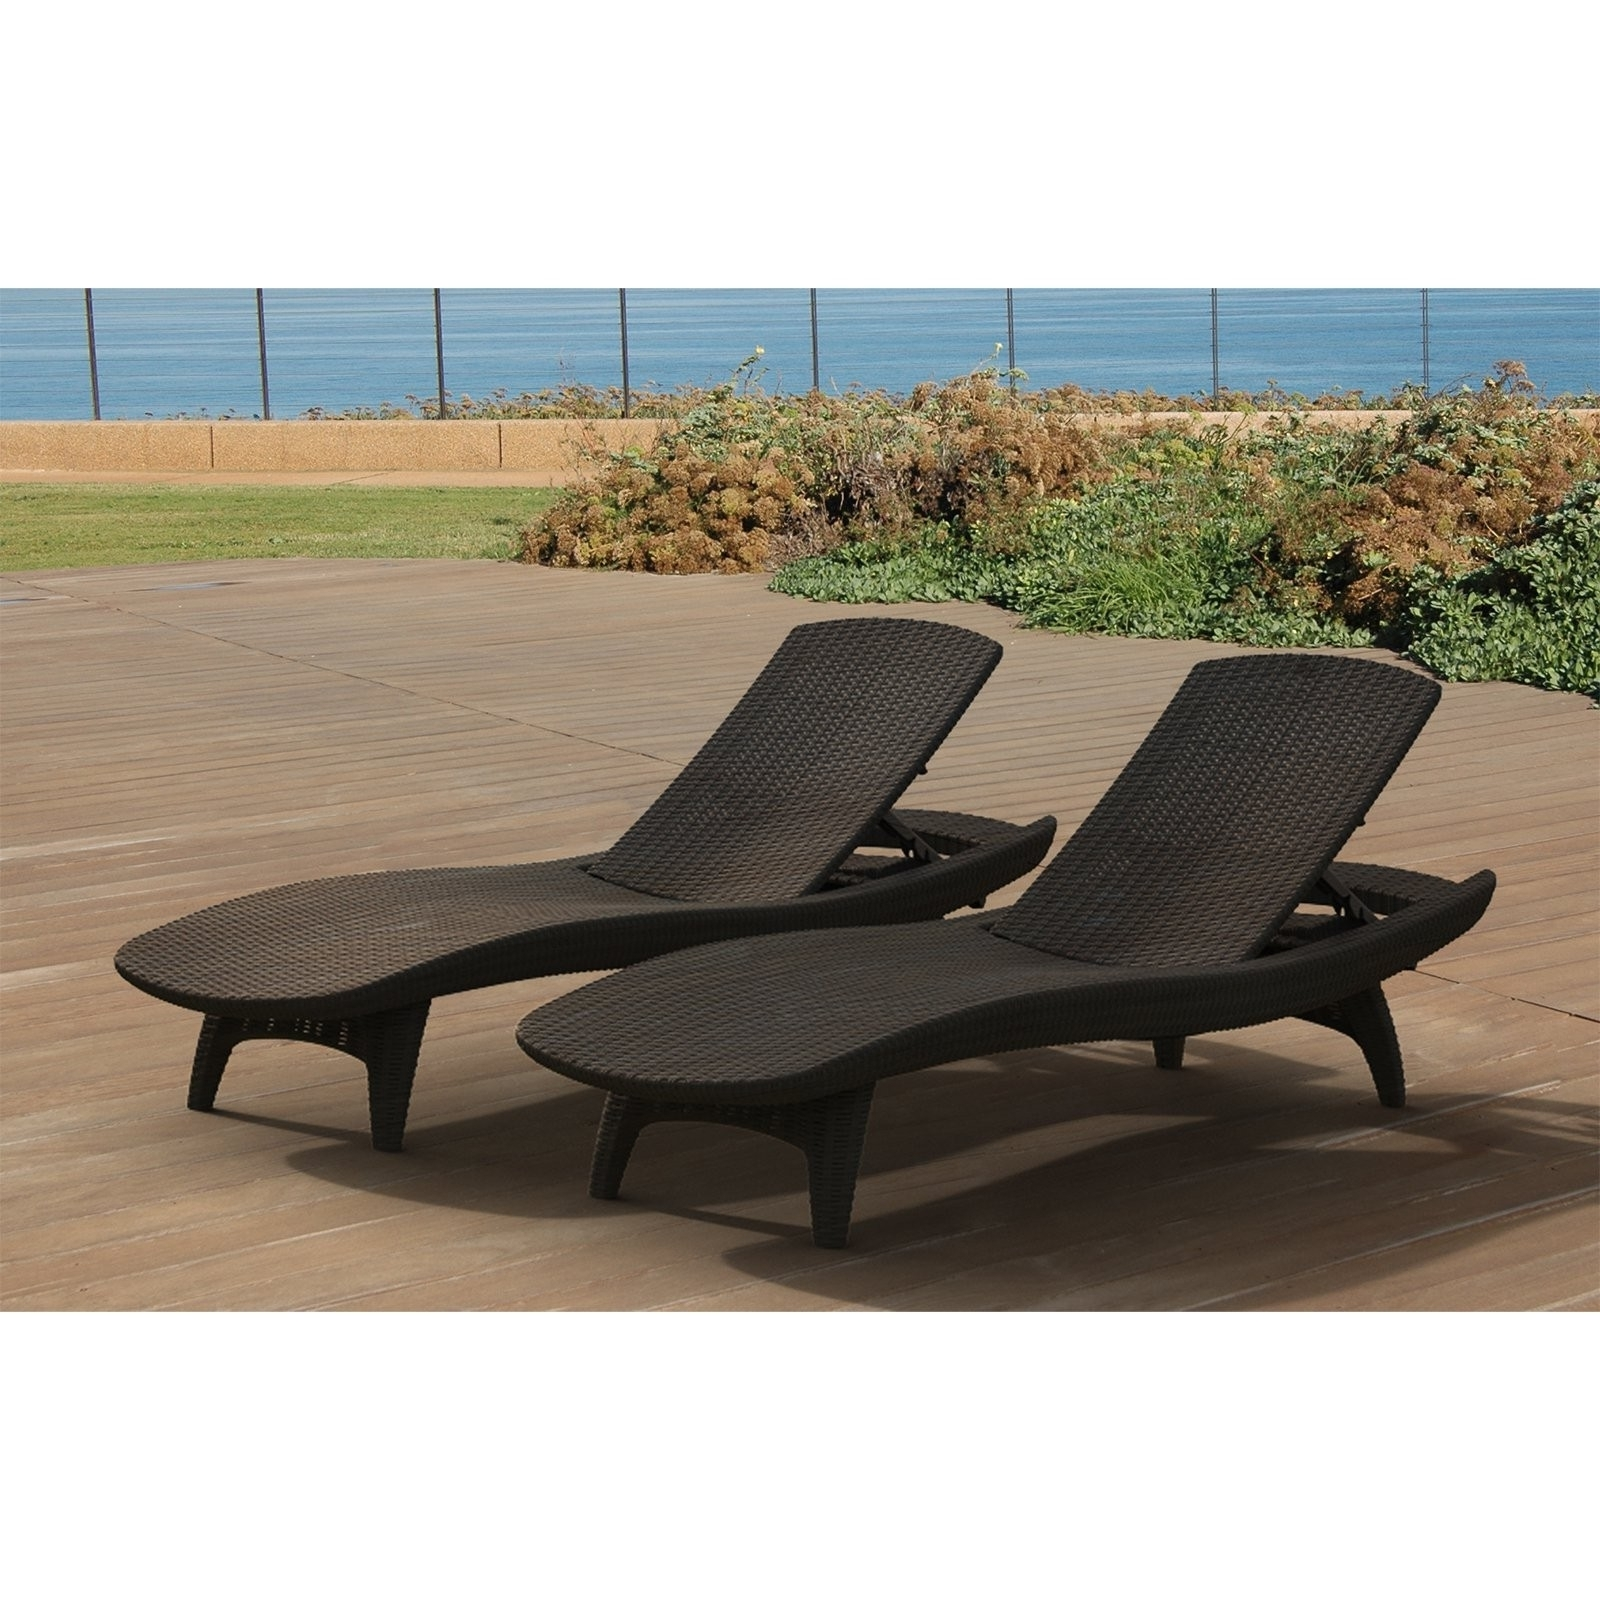 Jysk Outdoor Daybed Tuin Lounge Chair Tuin Loungeset 75tgx Good M